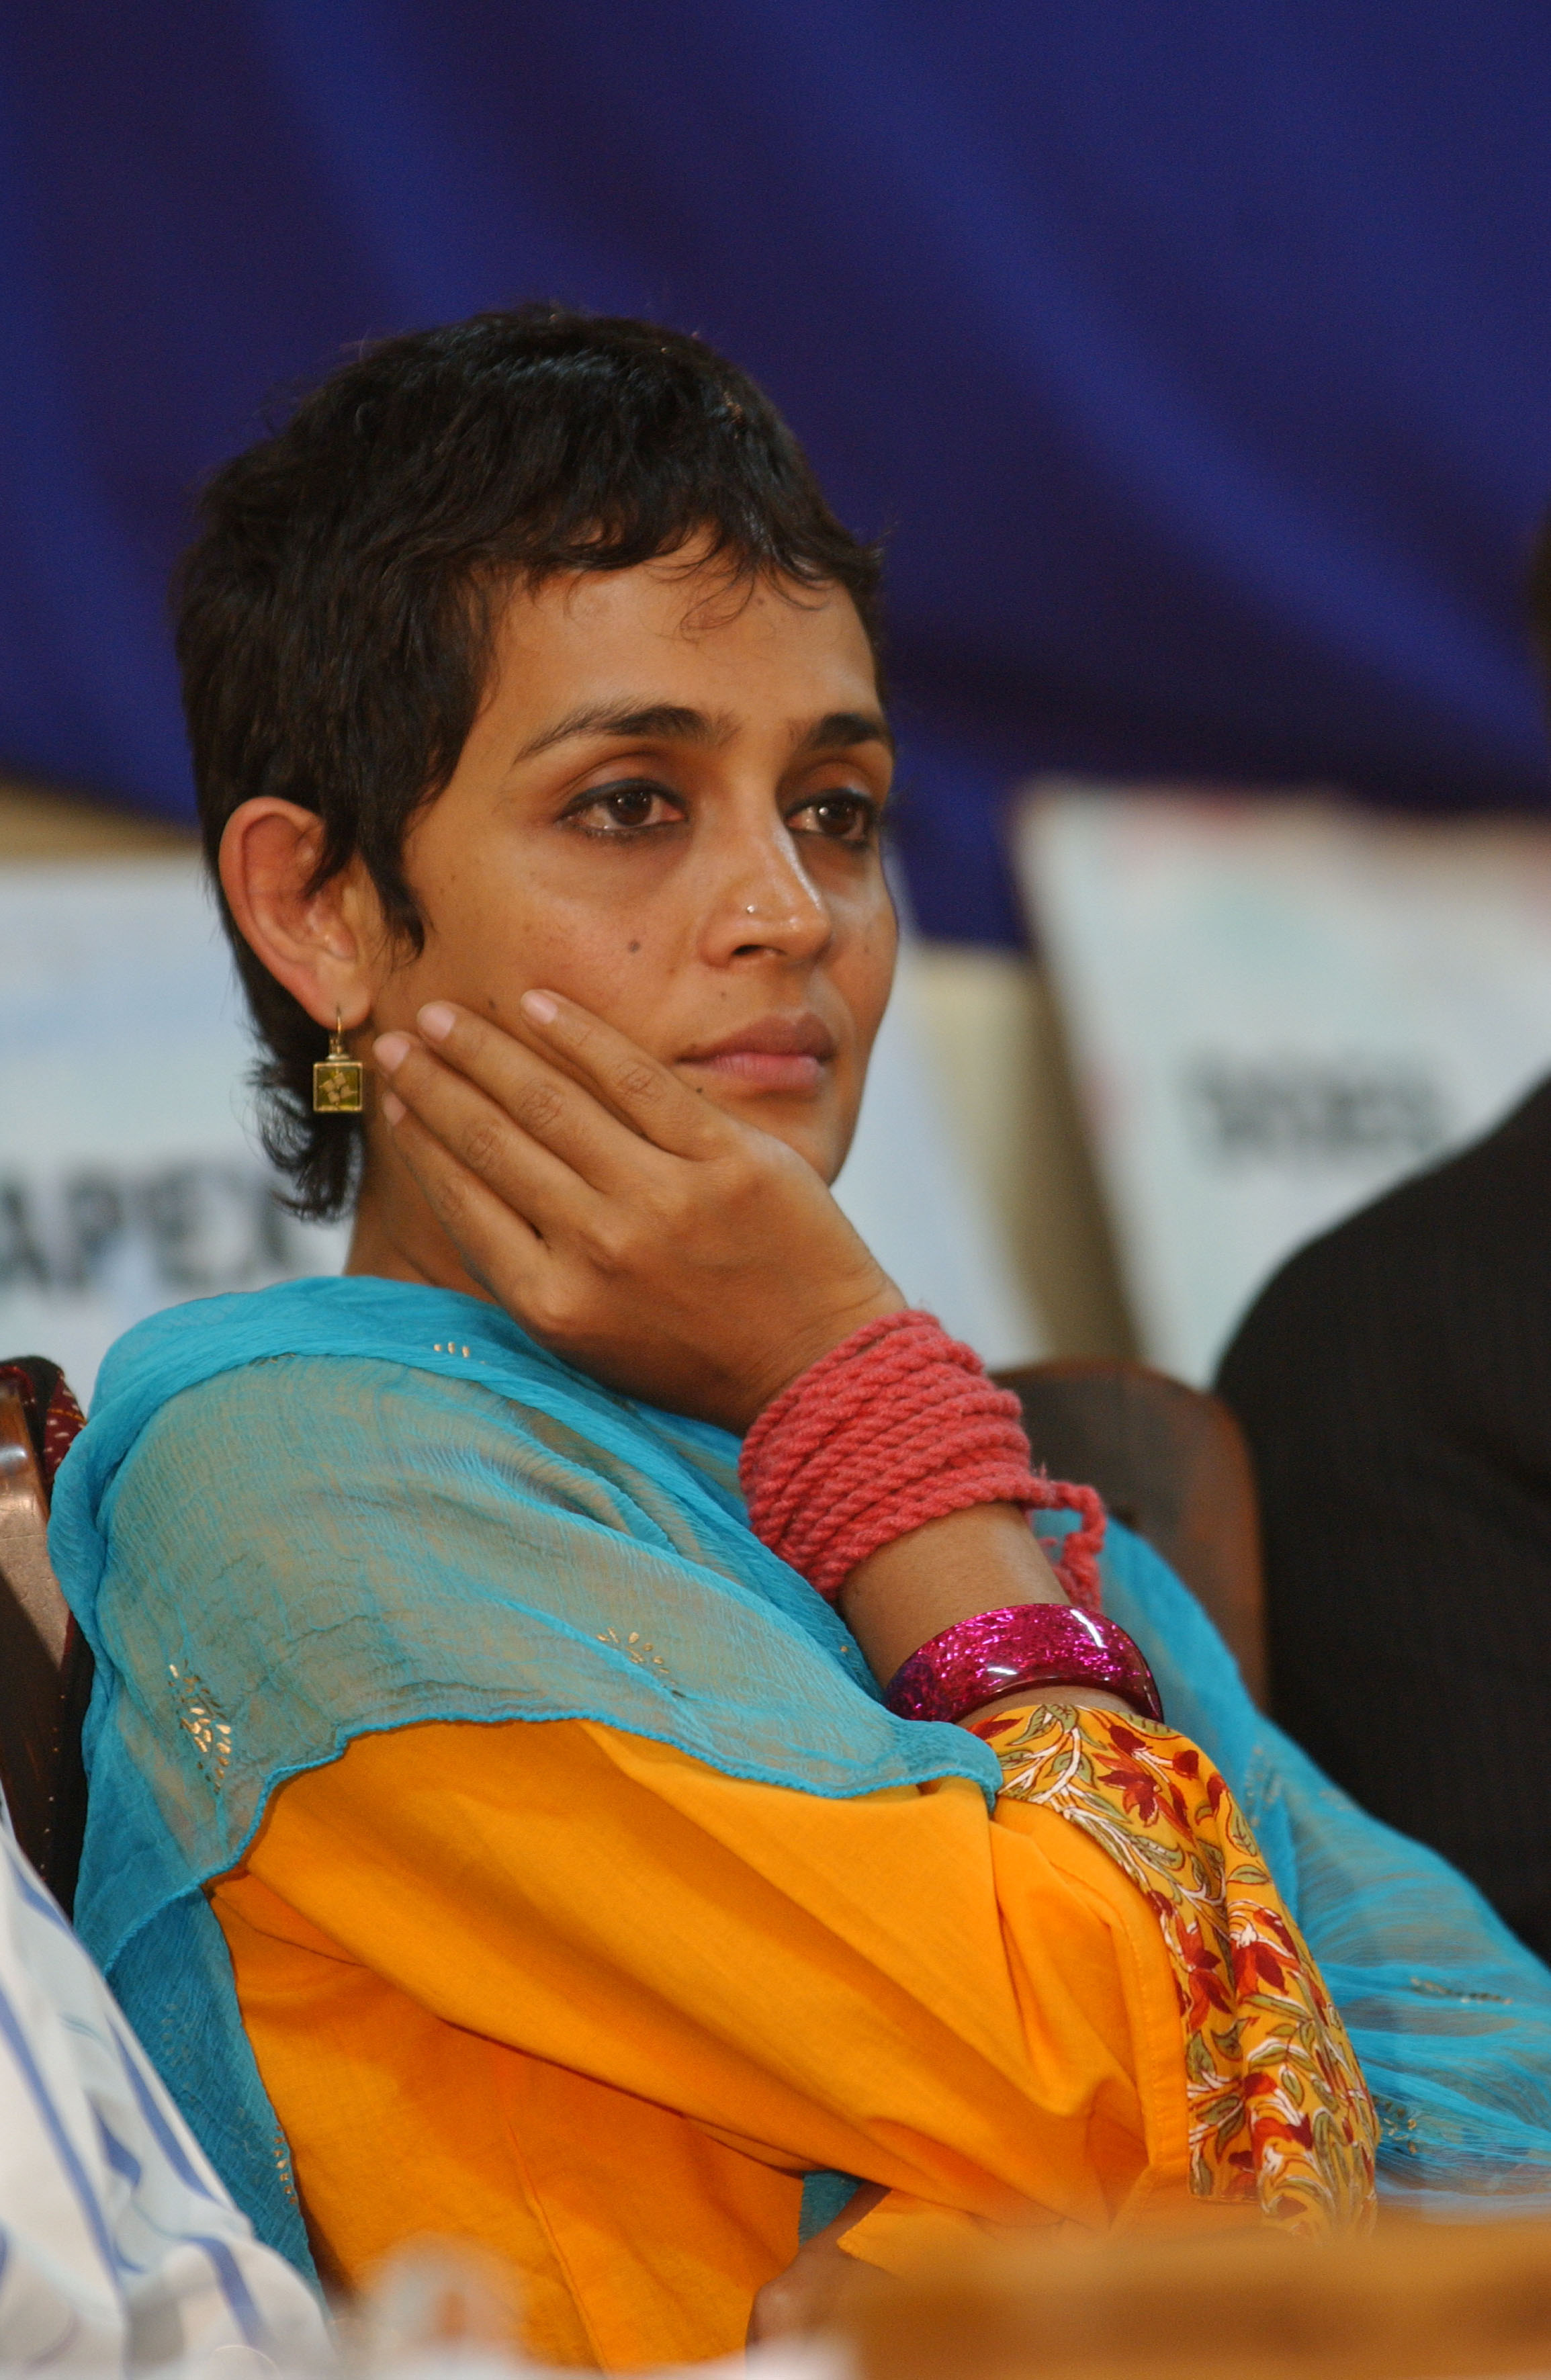 'A Voice for the Voiceless': @Arundhati_Roy vs Arundhati ...